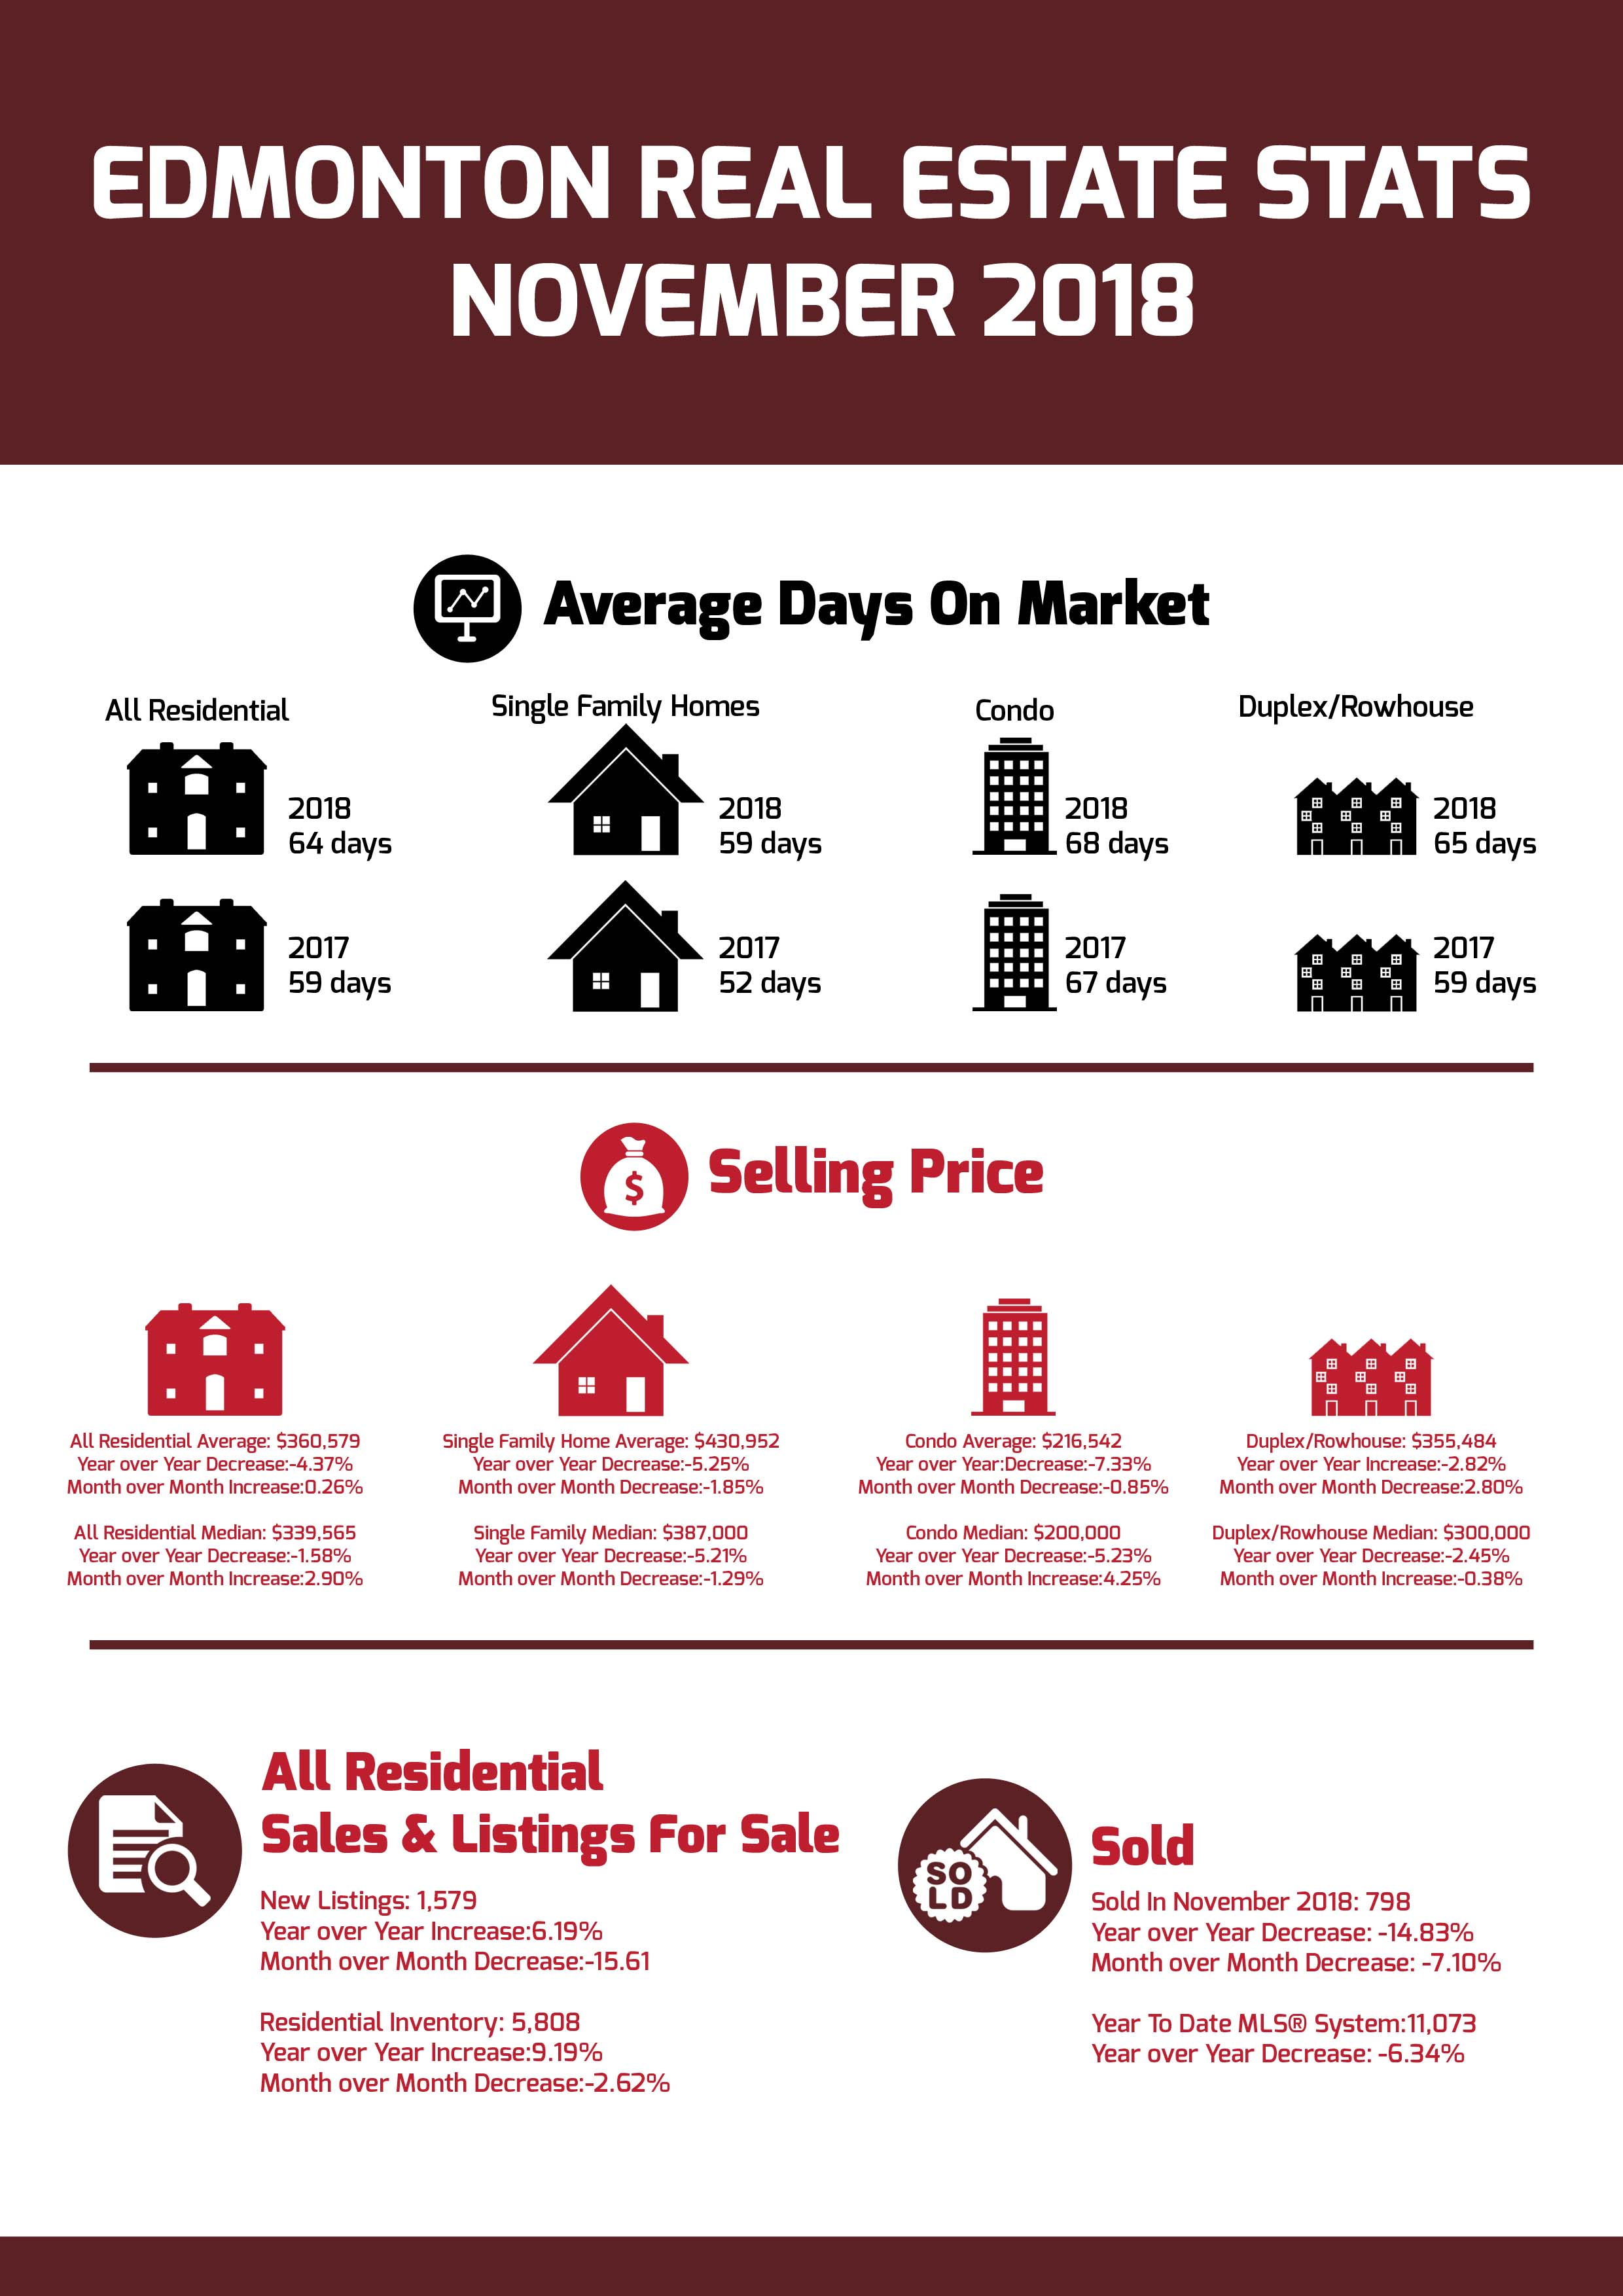 Edmonton Real Estate Stats November 2018